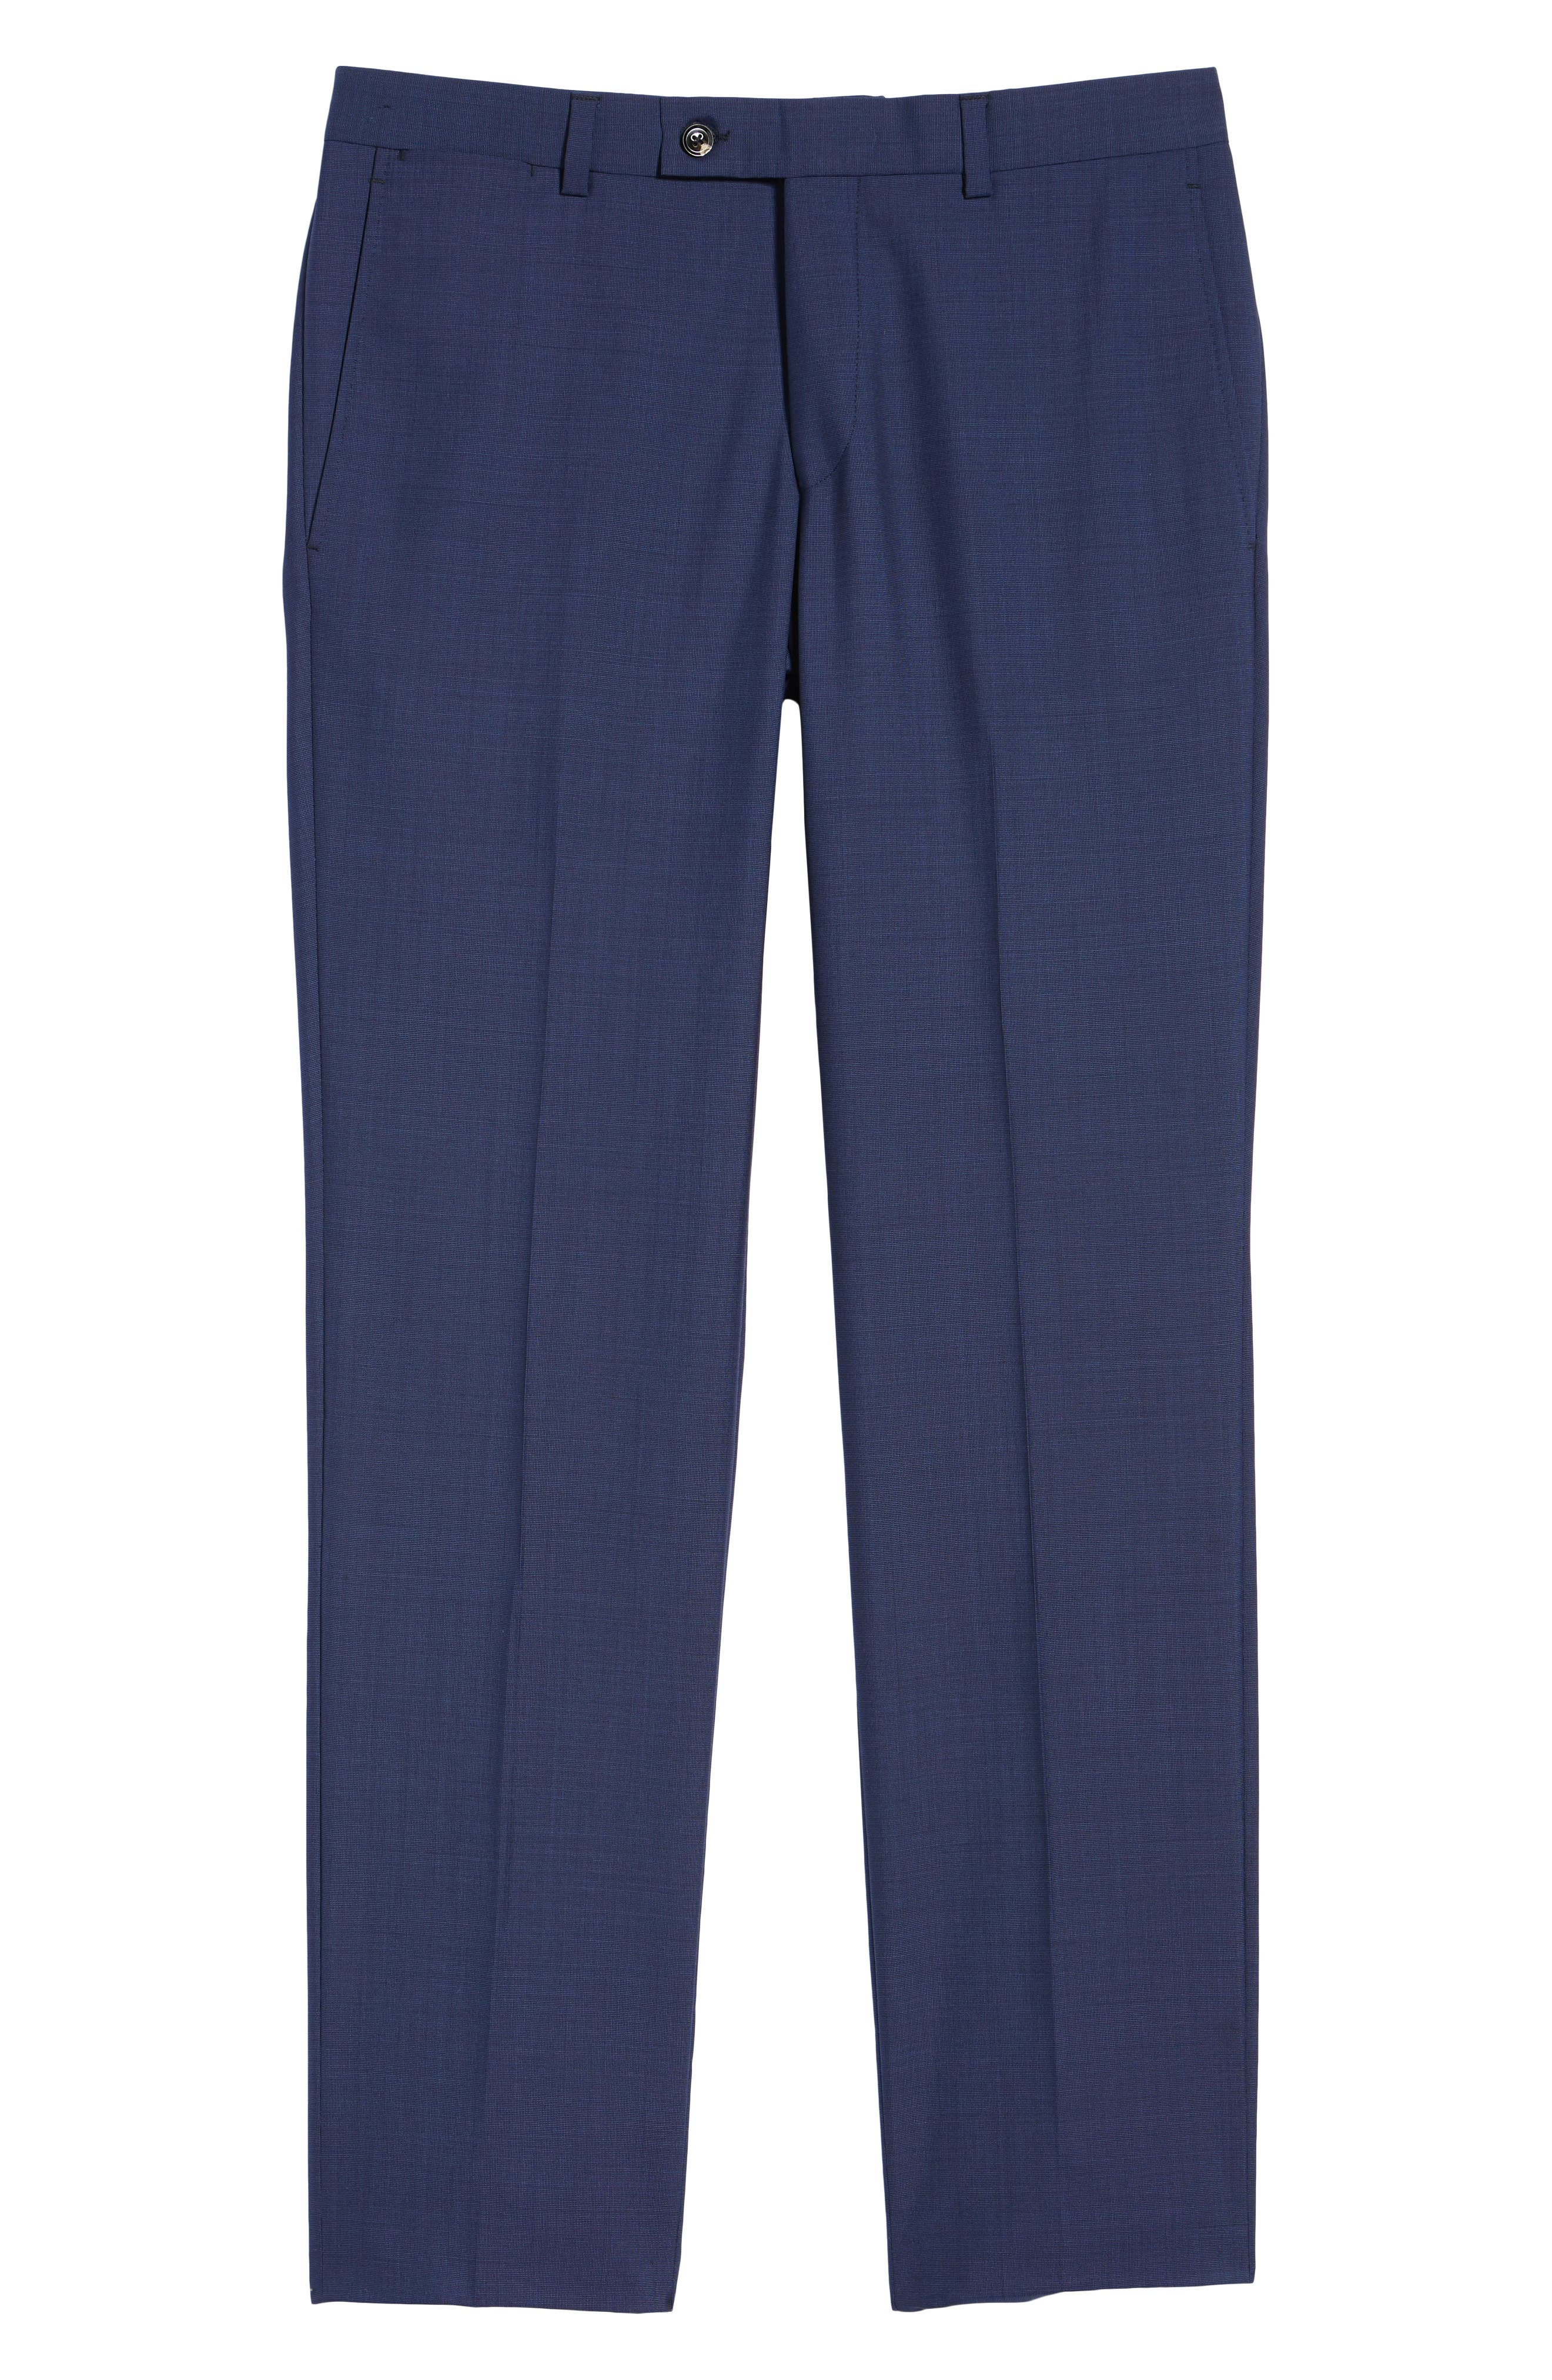 TED BAKER LONDON, Jefferson Flat Front Solid Wool Trousers, Alternate thumbnail 7, color, BLUE